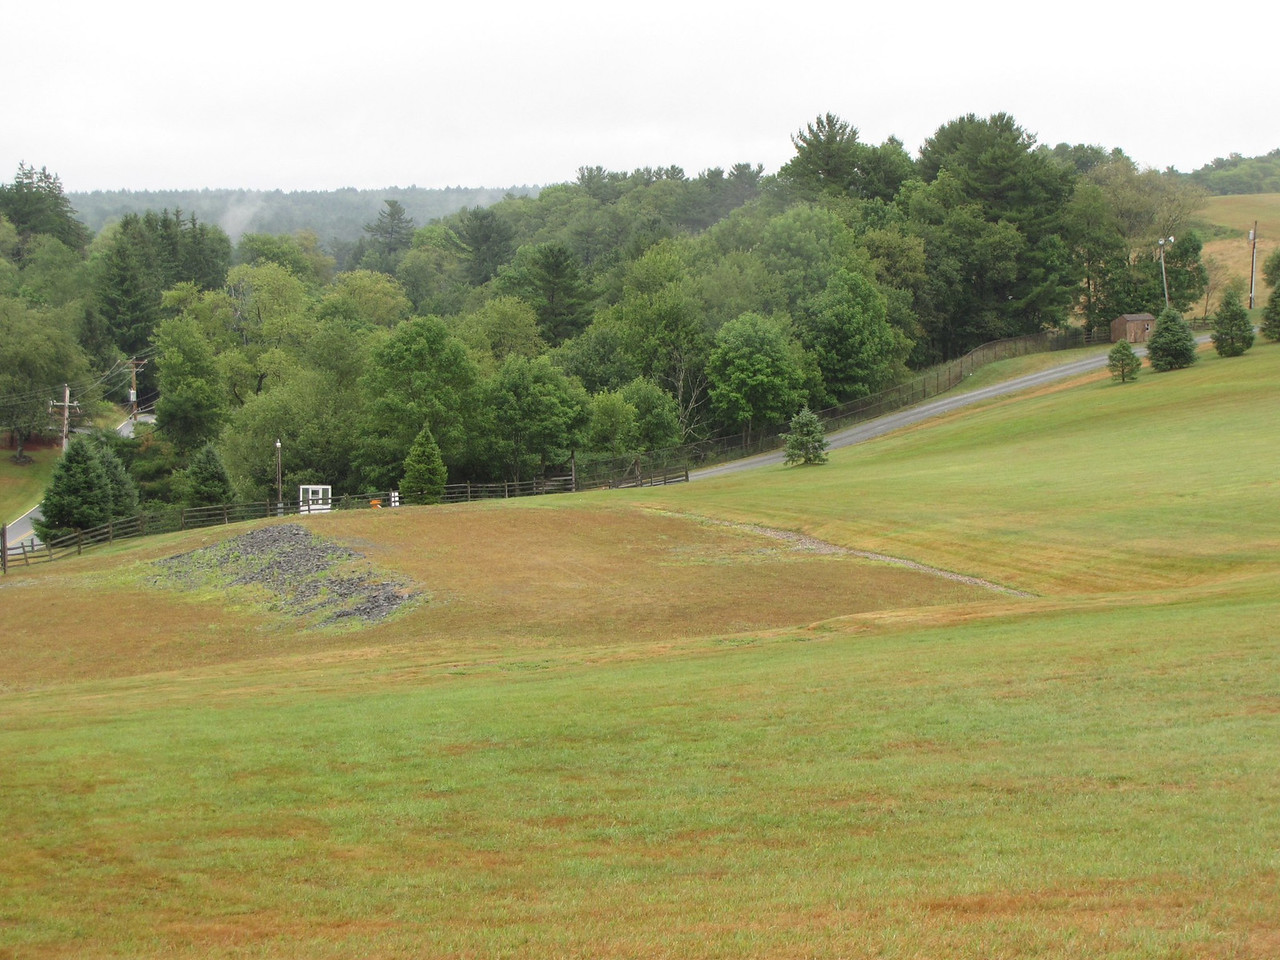 Woodstock stage site. This is the most-recent stage, used for the 1998-1999 'Day In The Garden' concerts. The 1969 stage was set a bit further to the right.